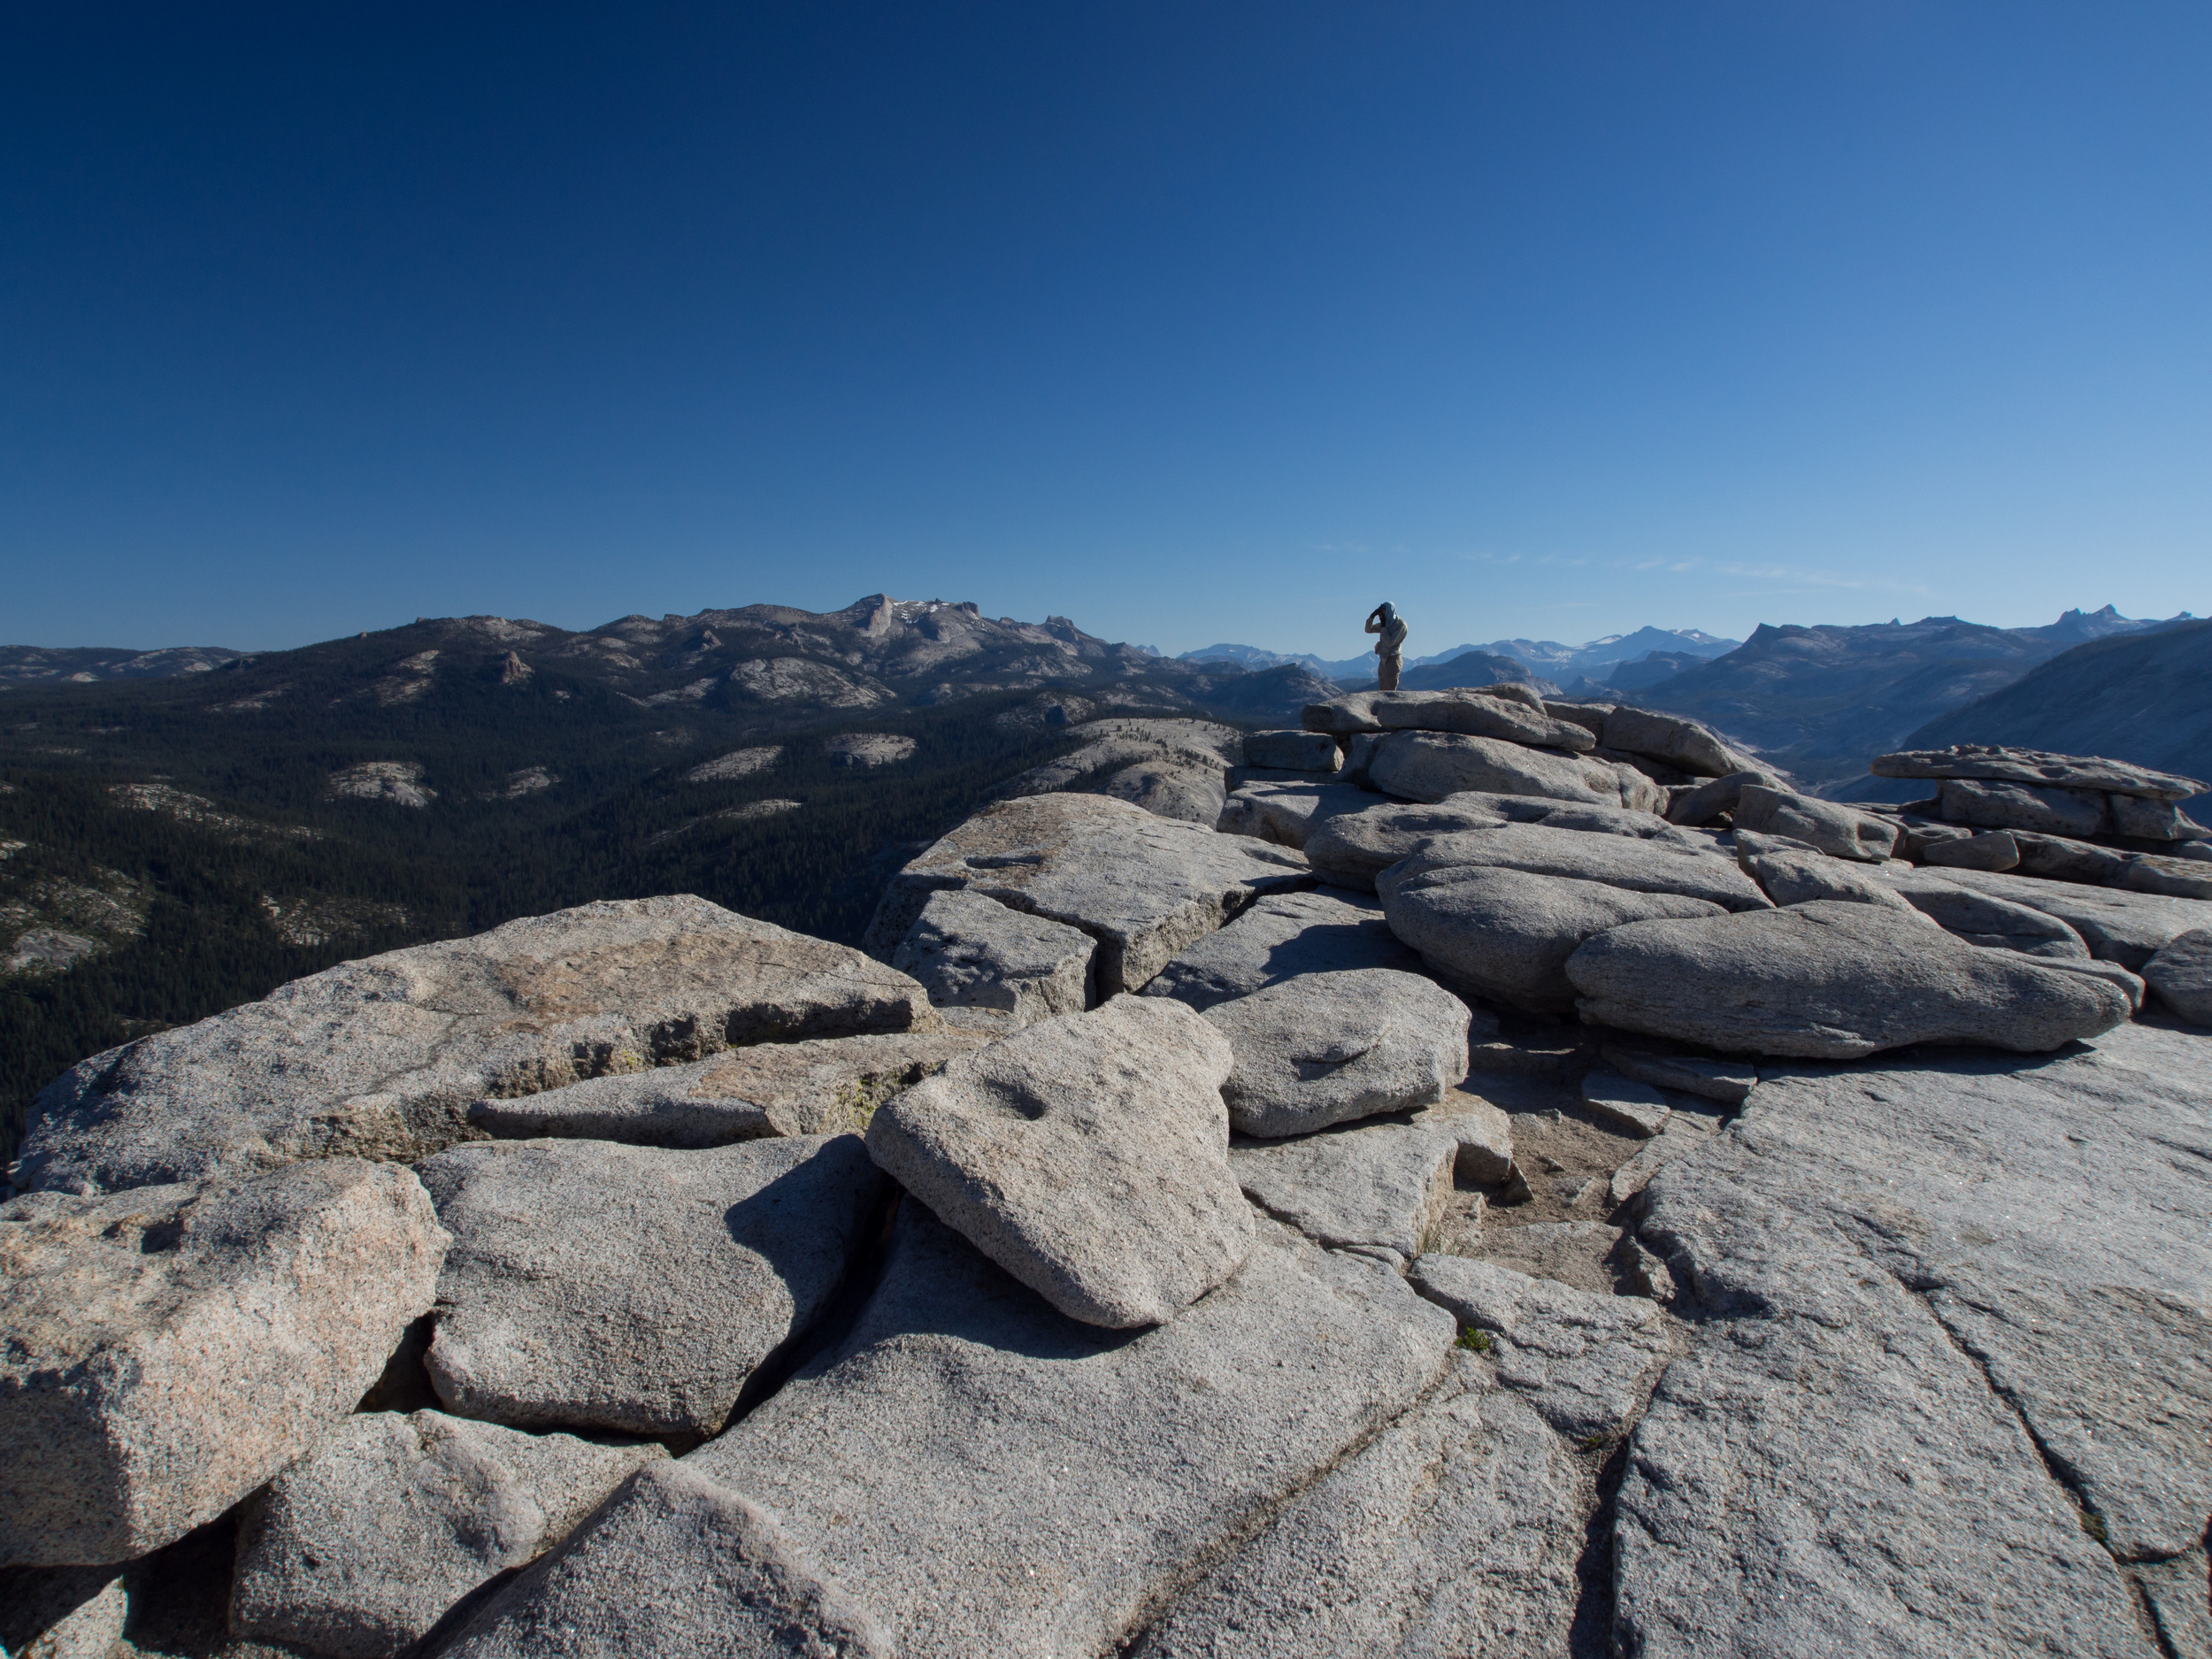 The summit of Half Dome